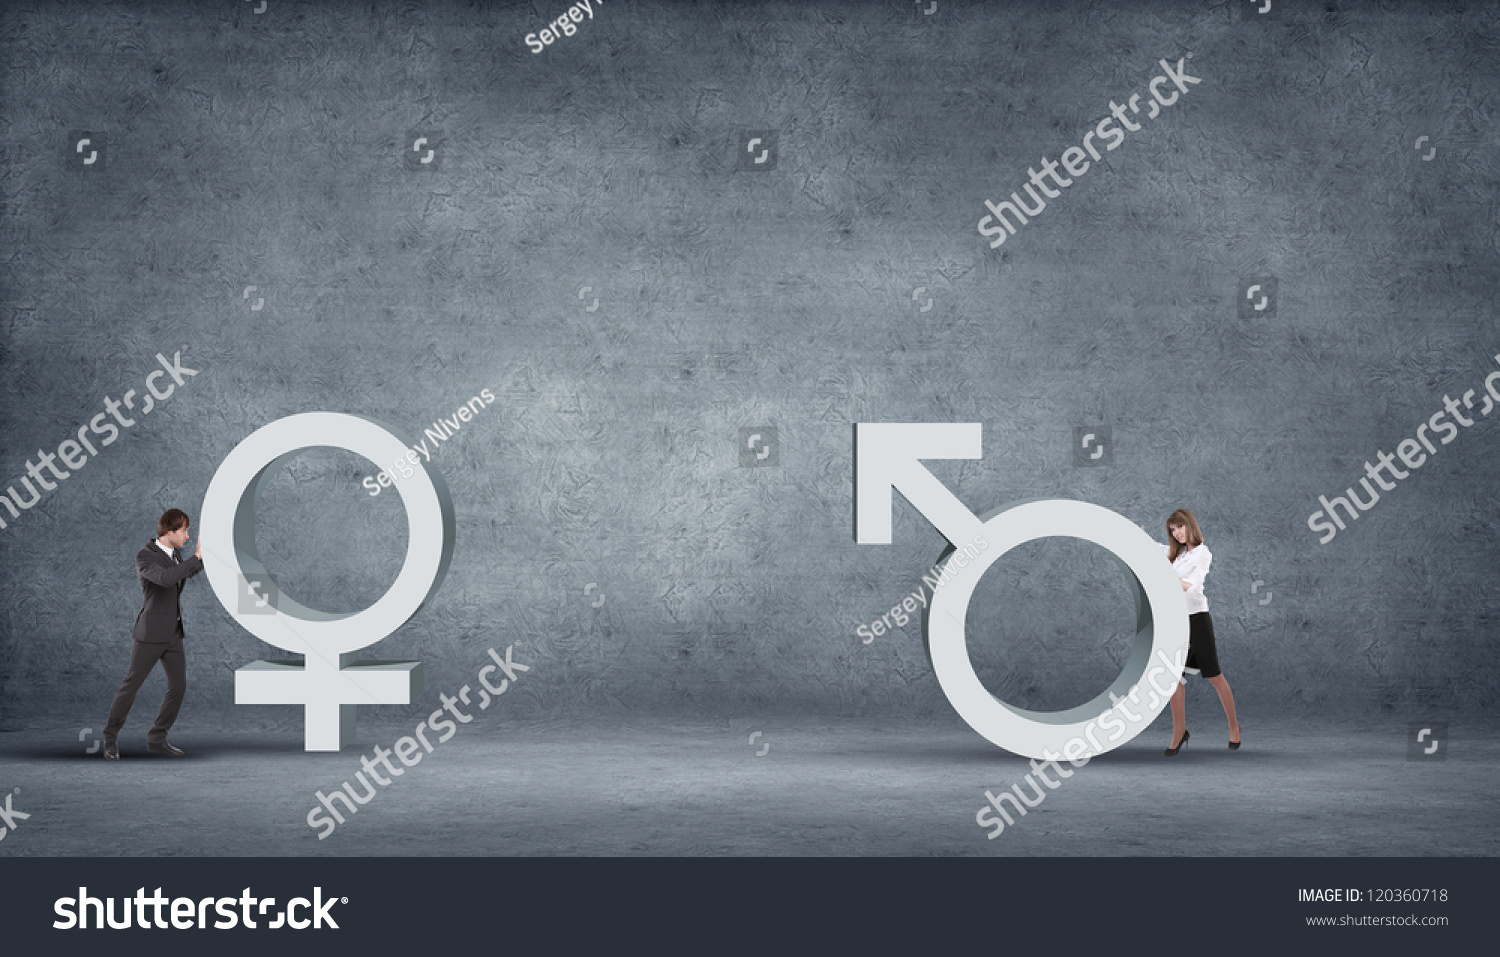 Illustration symbol love different genders symbols stock photo illustration with symbol of love and different genders symbols buycottarizona Images